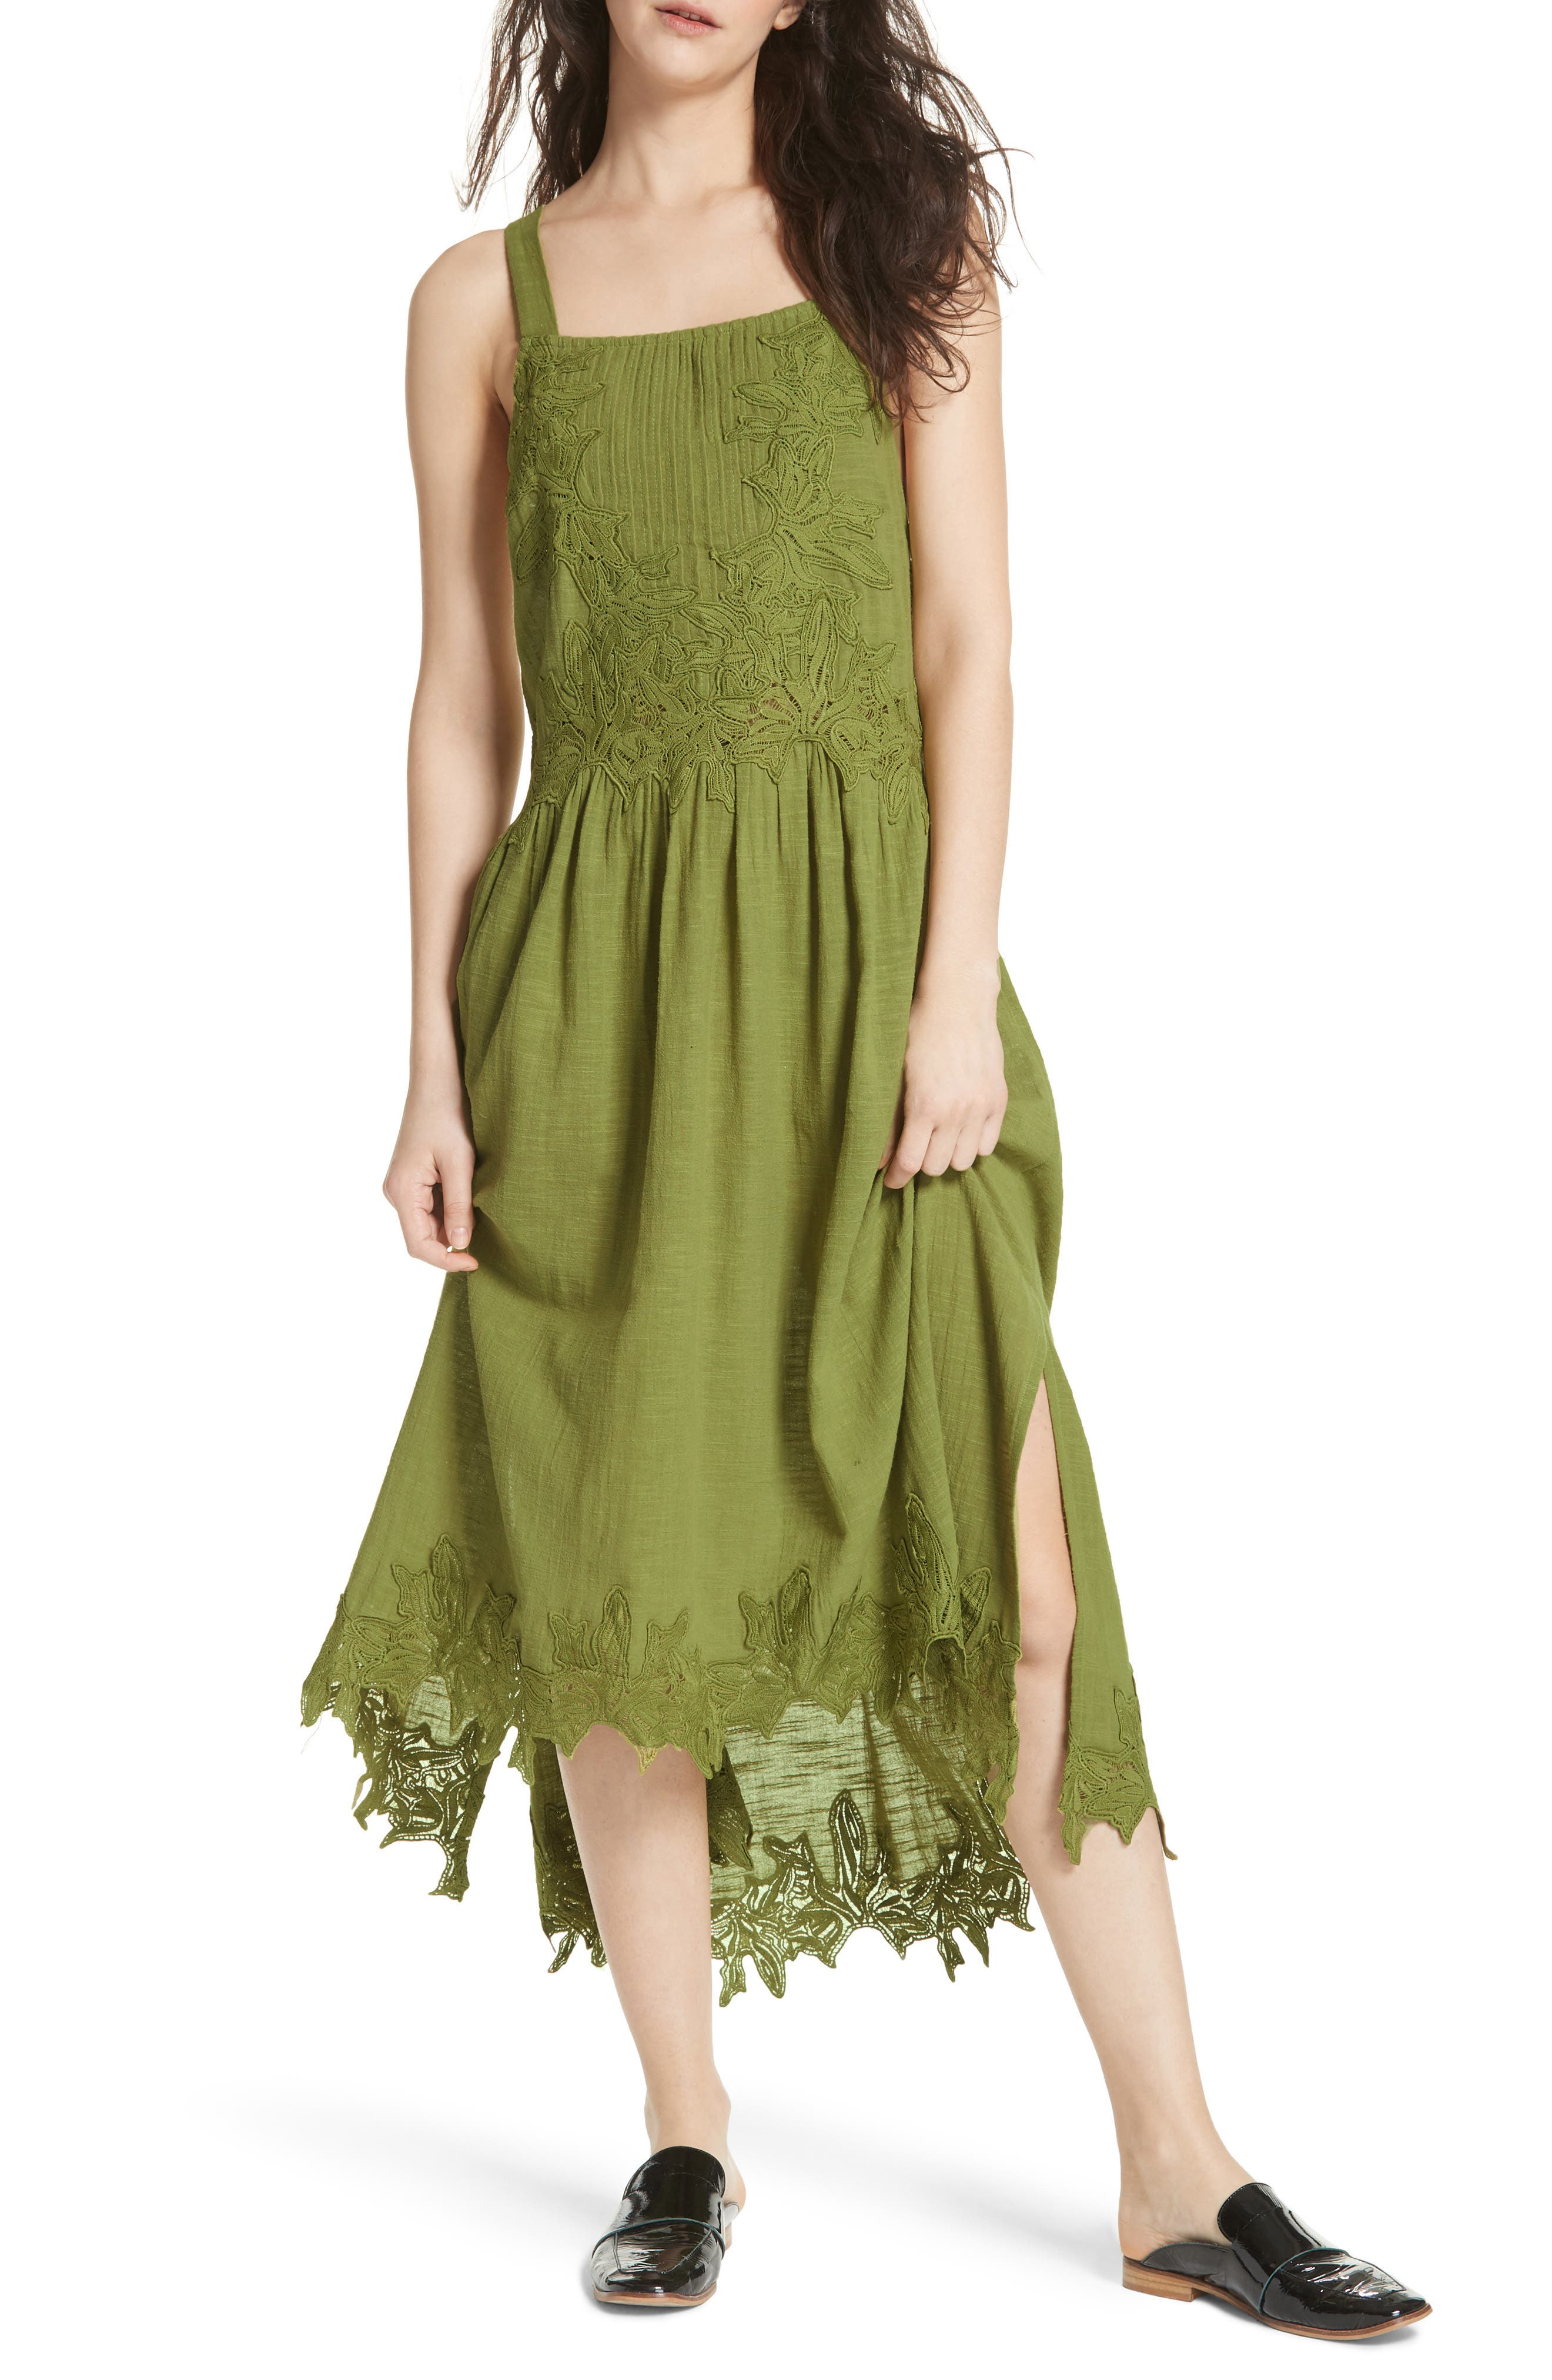 In Your Arms Appliqué Maxi Dress,                             Main thumbnail 1, color,                             Green